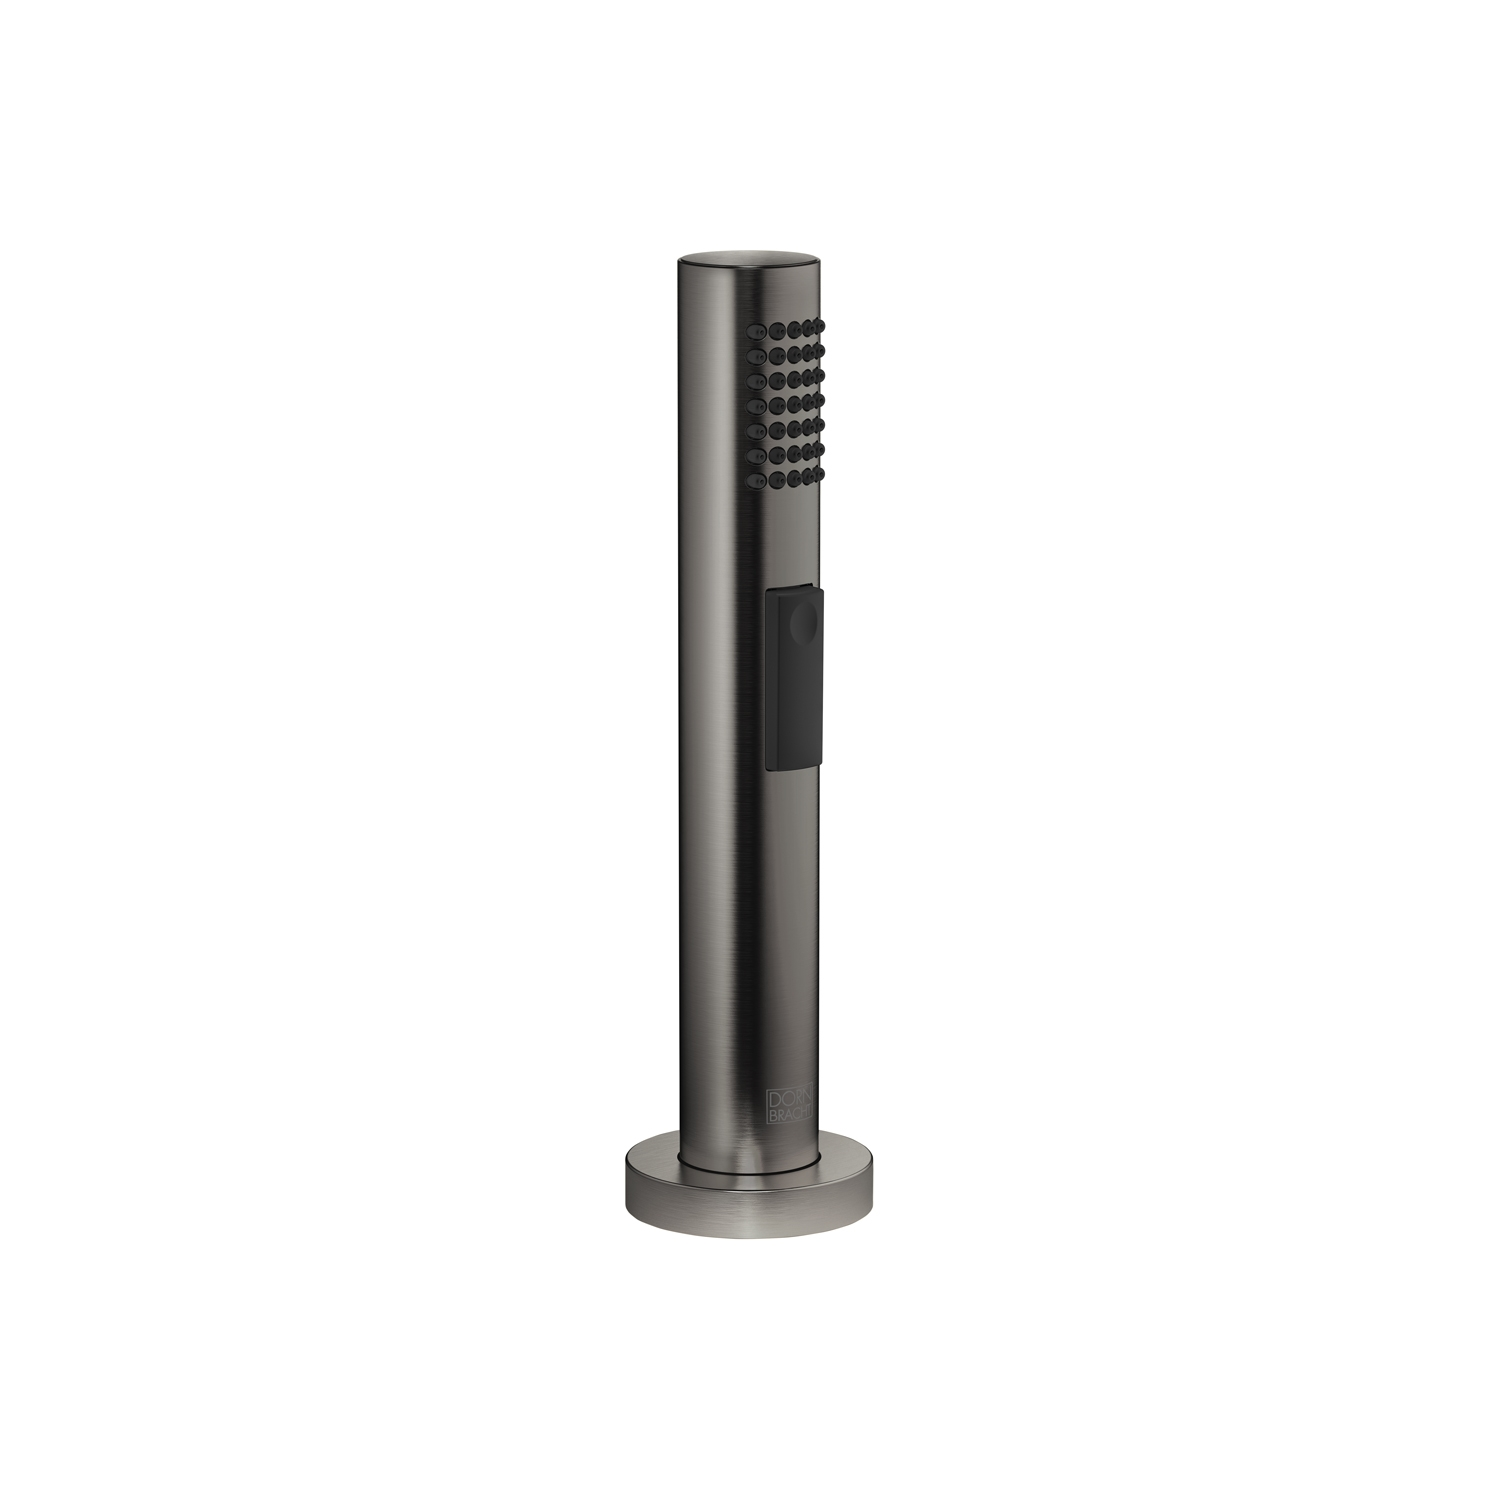 Dornbracht 27721970-99 Round Universal Side Spray Set - Dark Platinum Matte